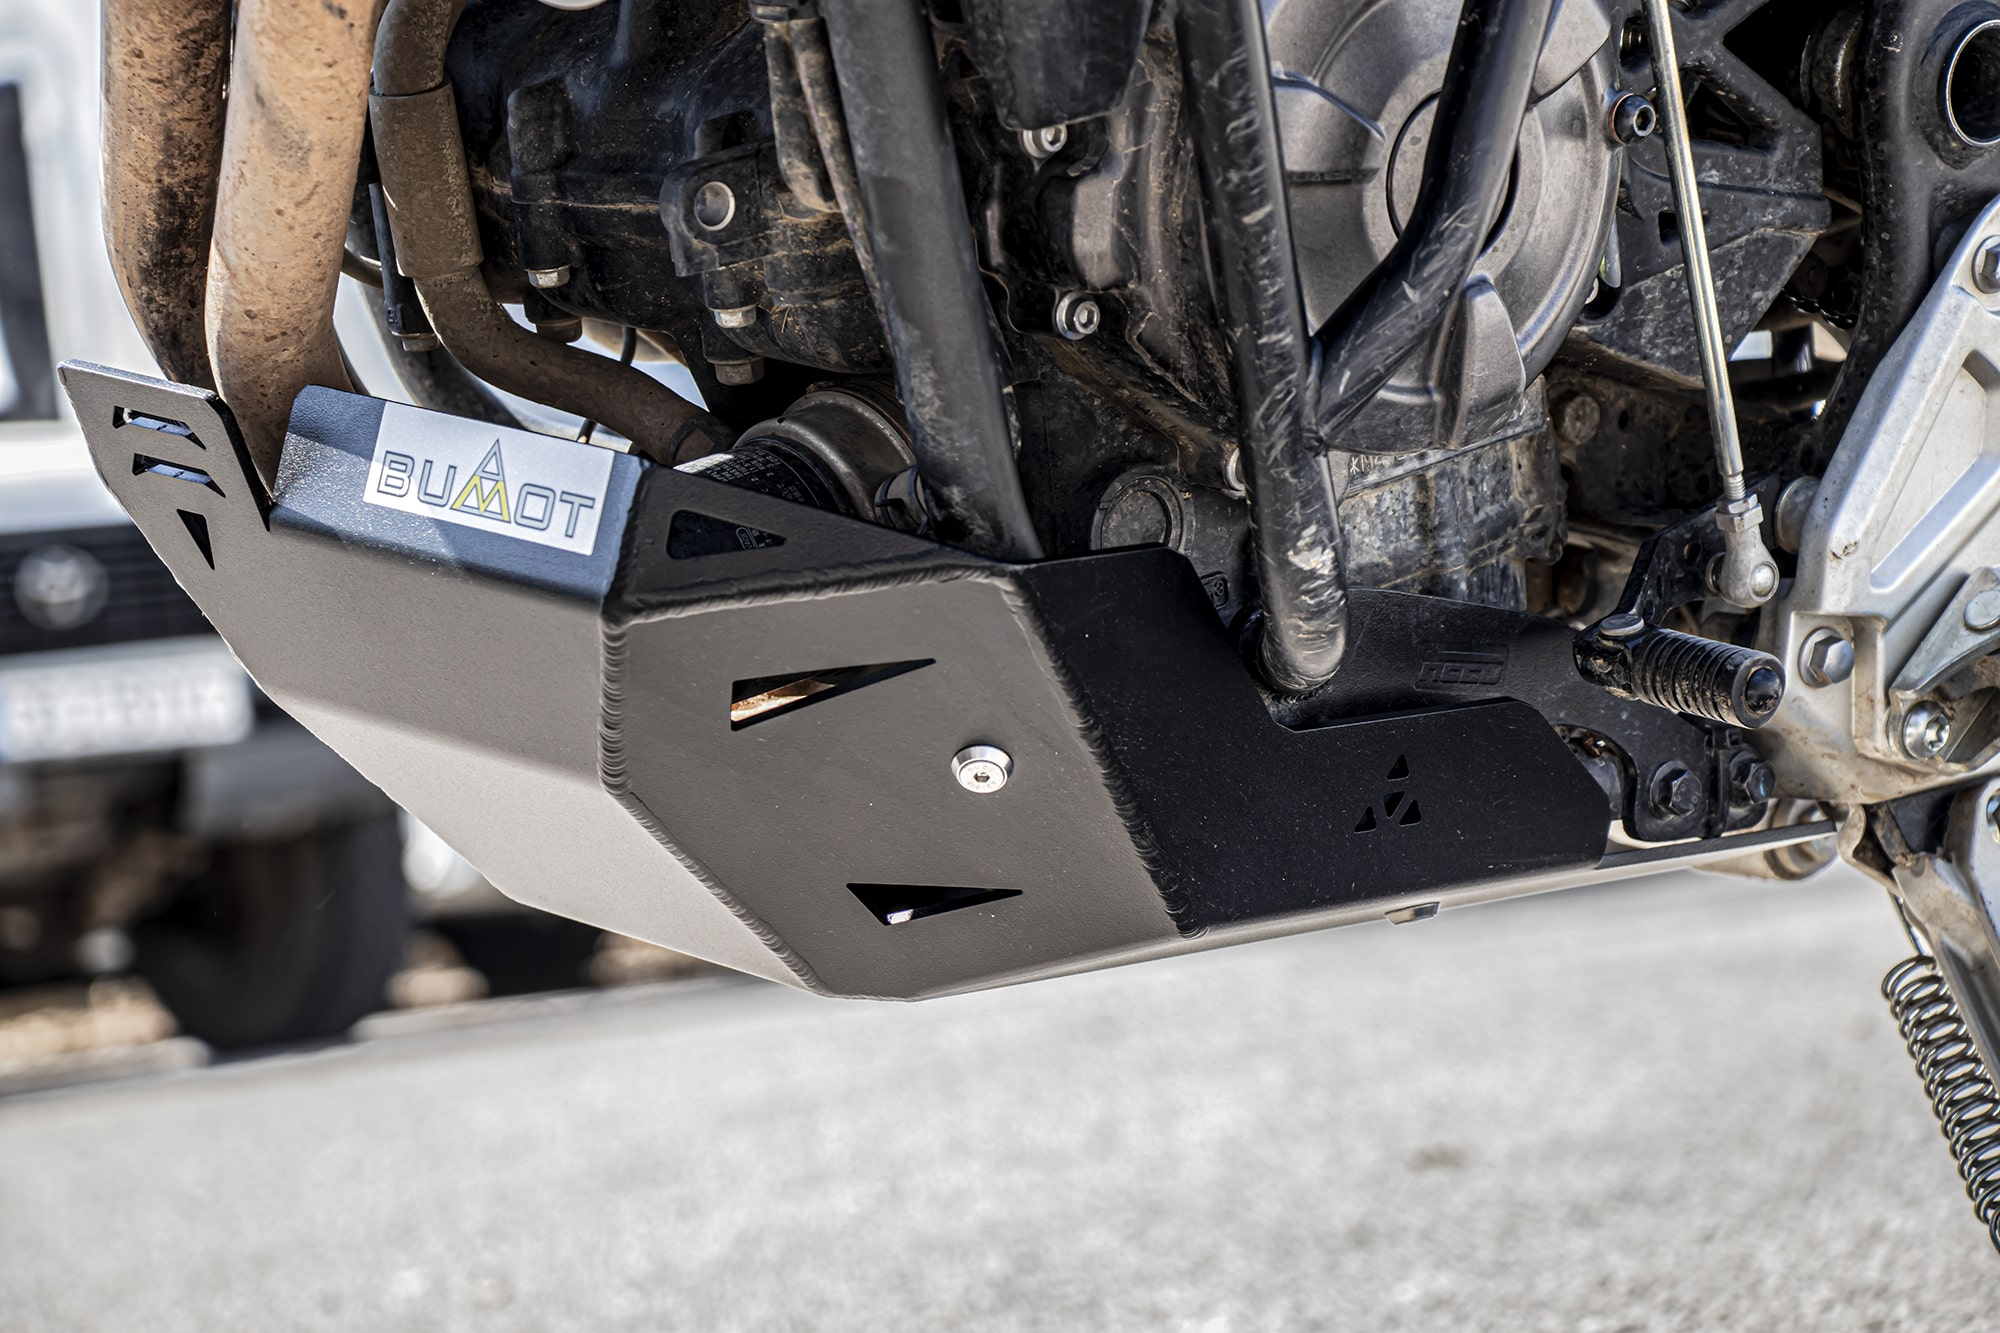 Skid plate for T700